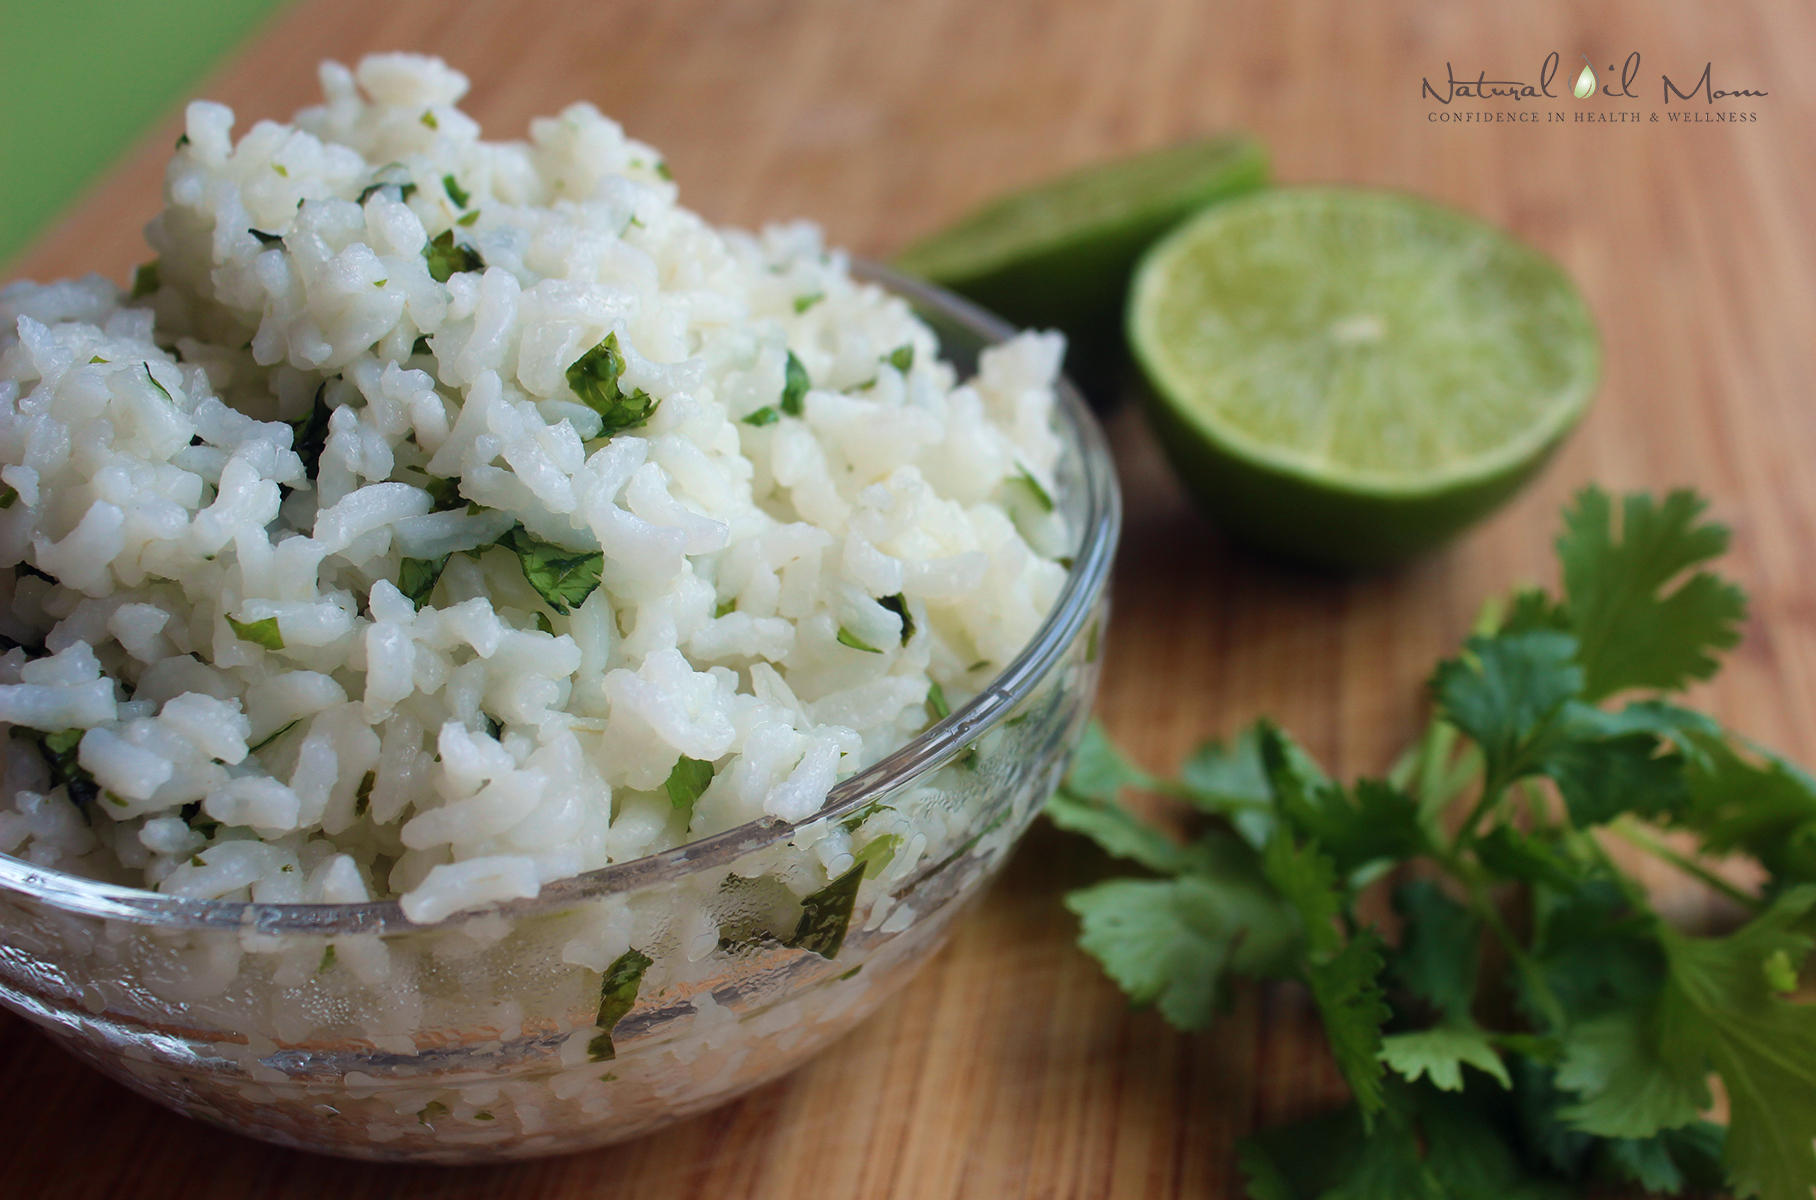 Cilantro-Lime Rice - IMG 1873 - Cilantro-Lime Rice